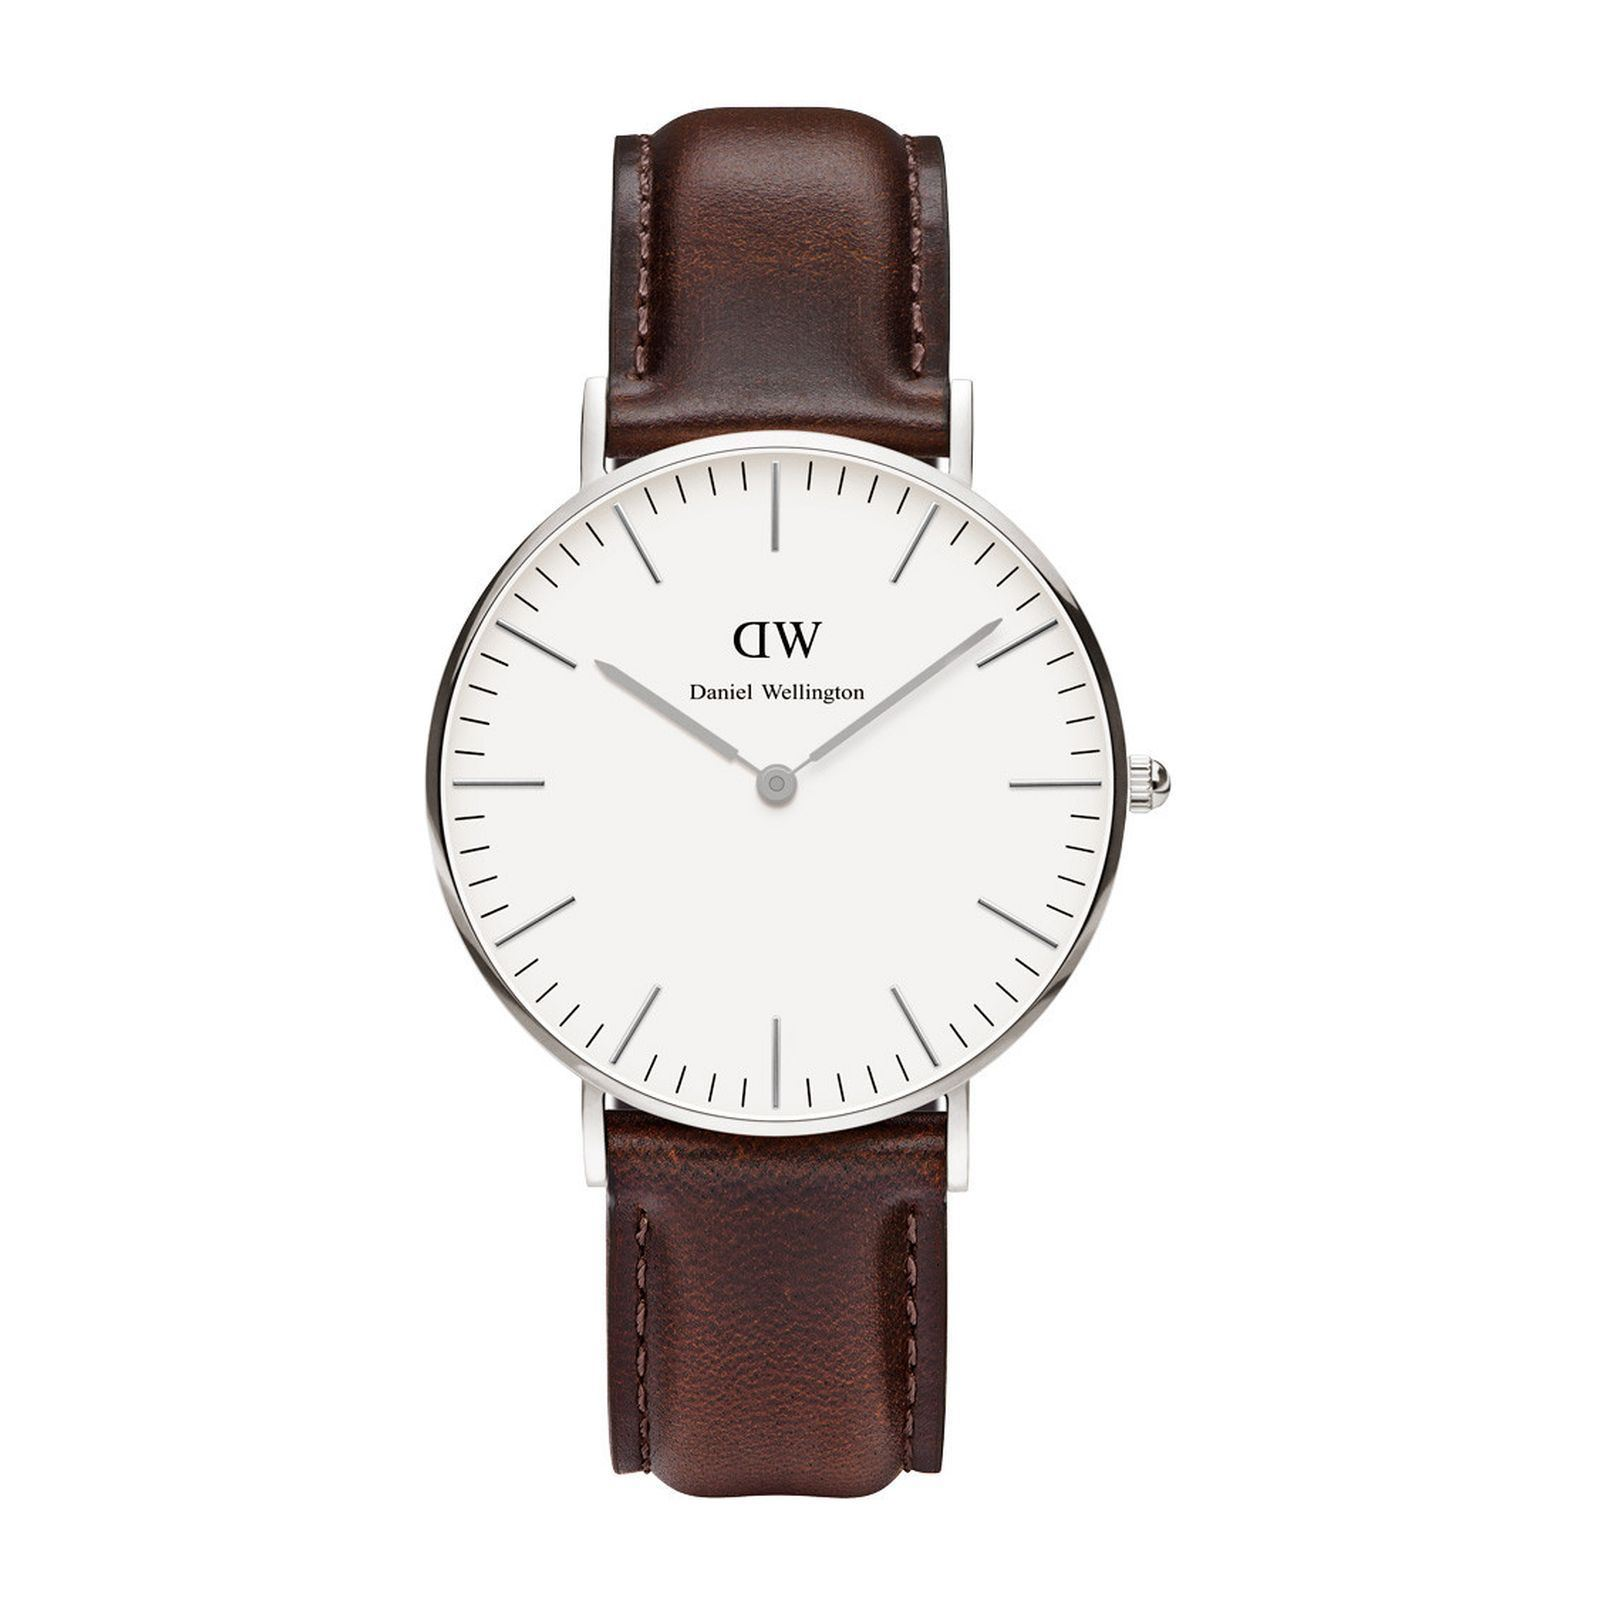 daniel wellington uhr mit lederarmband braun brandalley. Black Bedroom Furniture Sets. Home Design Ideas